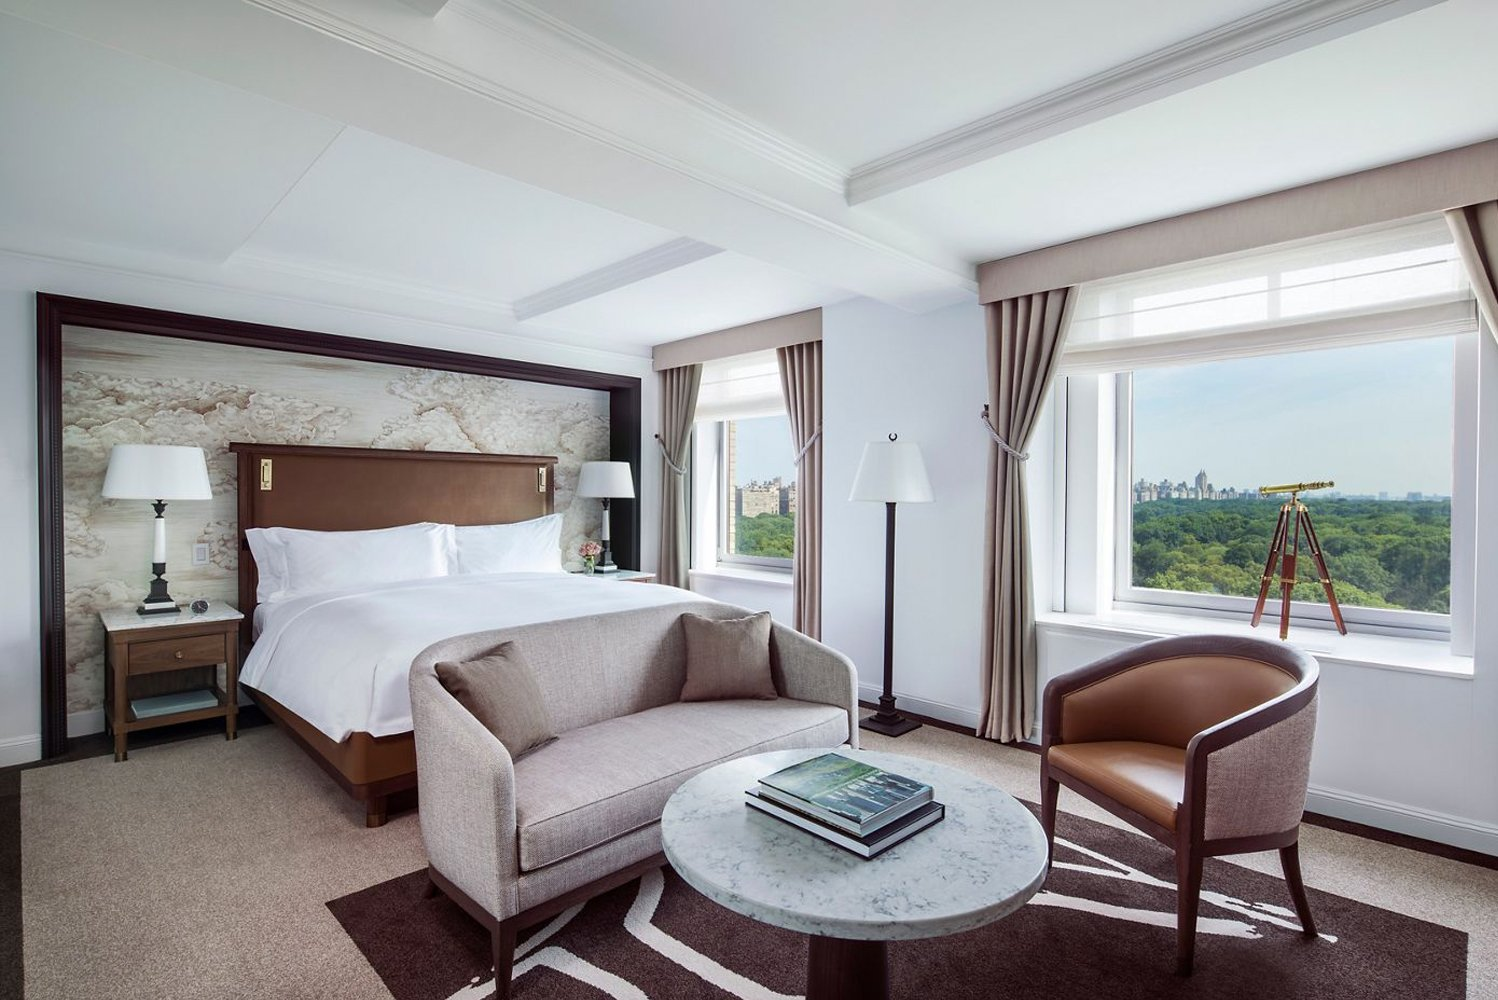 The Ritz-Carlton New York, Central Park debuted new guestrooms, suites, Club Lounge and a refreshed La Prairie Spa.